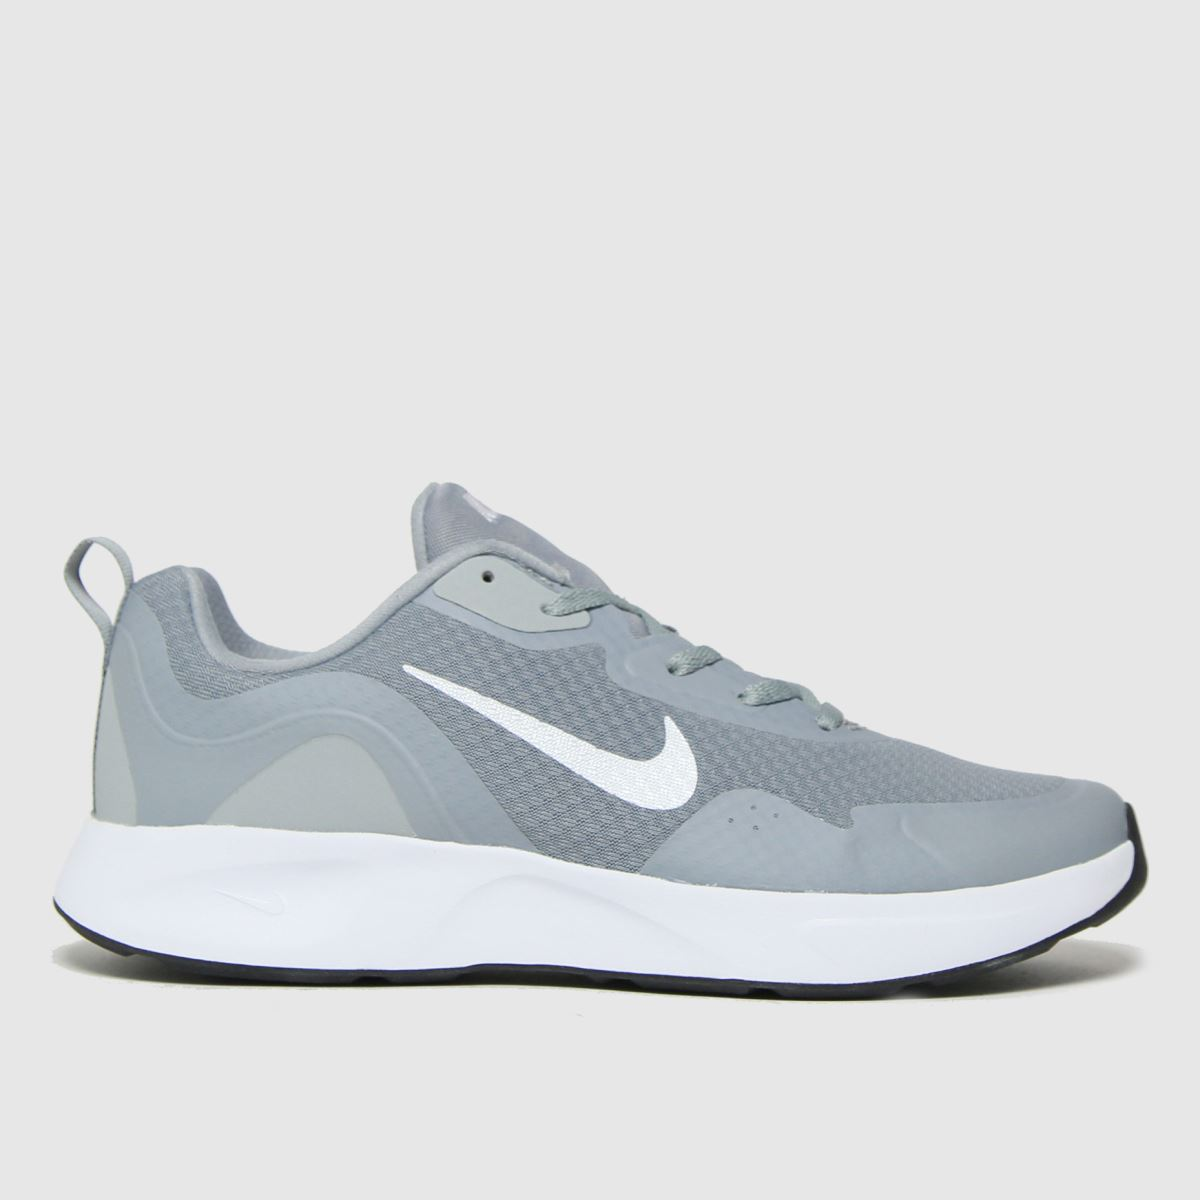 Nike Grey Wearallday Trainers